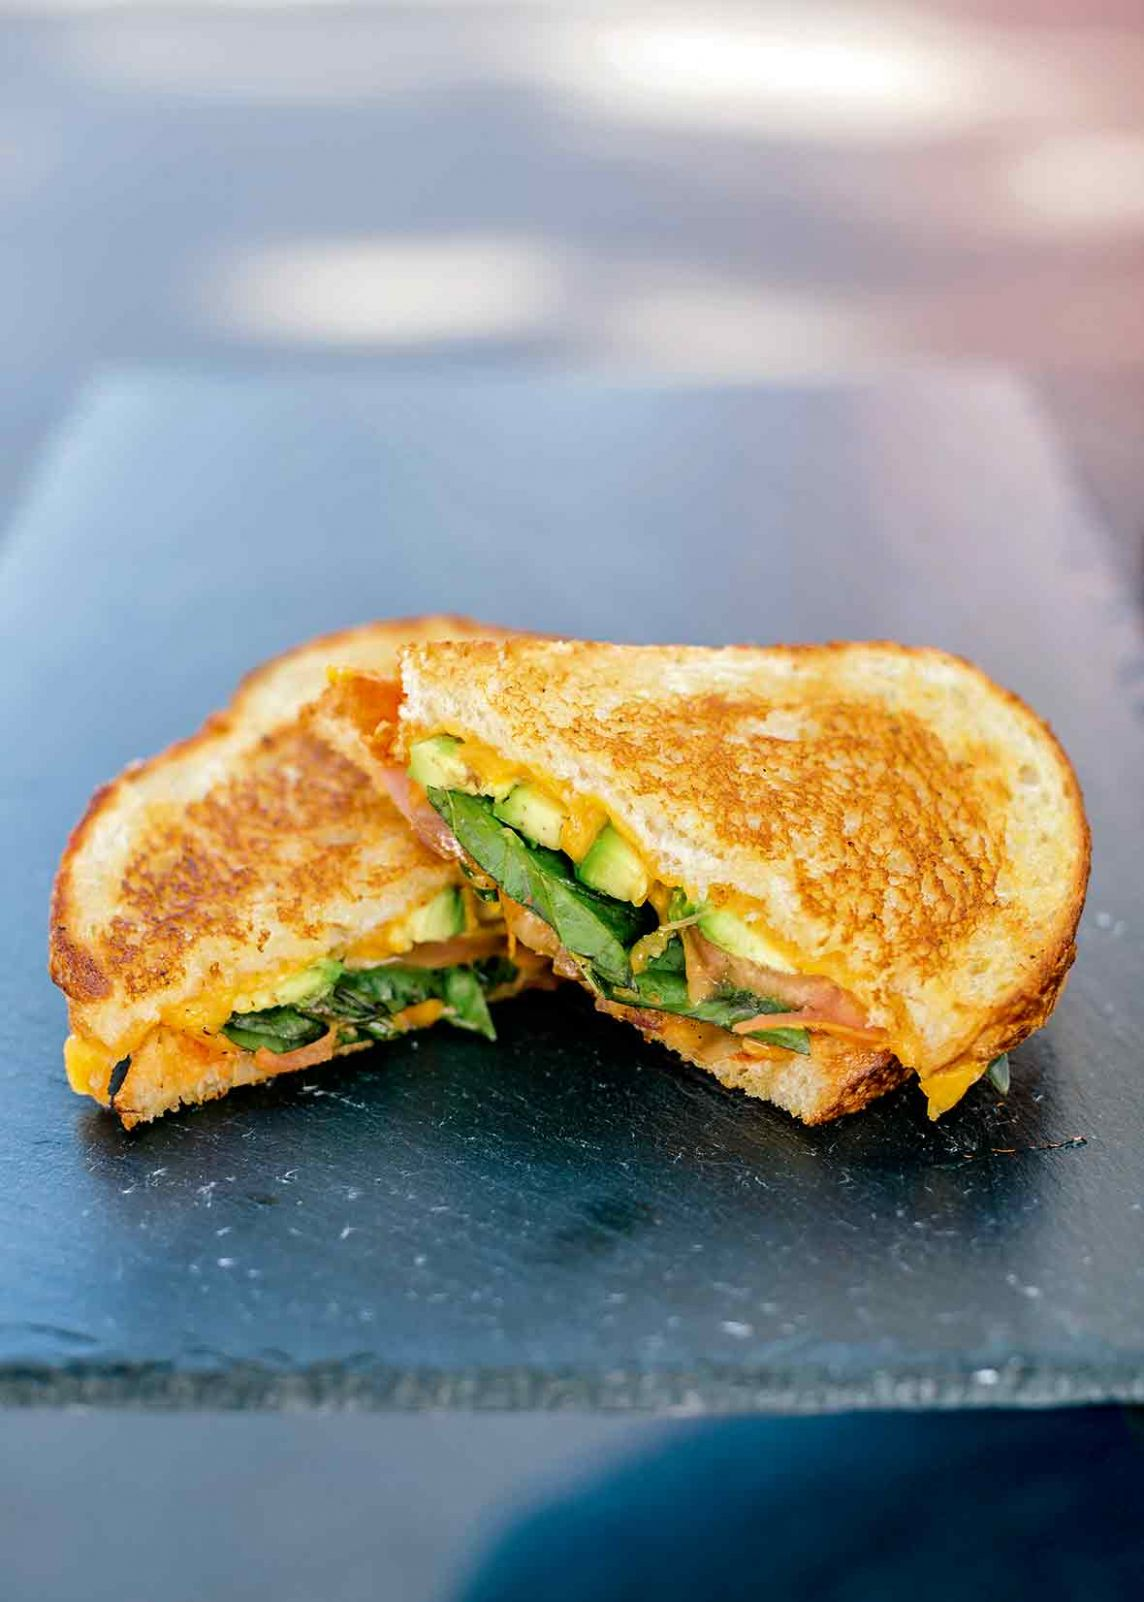 Veggie Grilled Cheese Sandwich - Sandwich Recipes Grilled Cheese